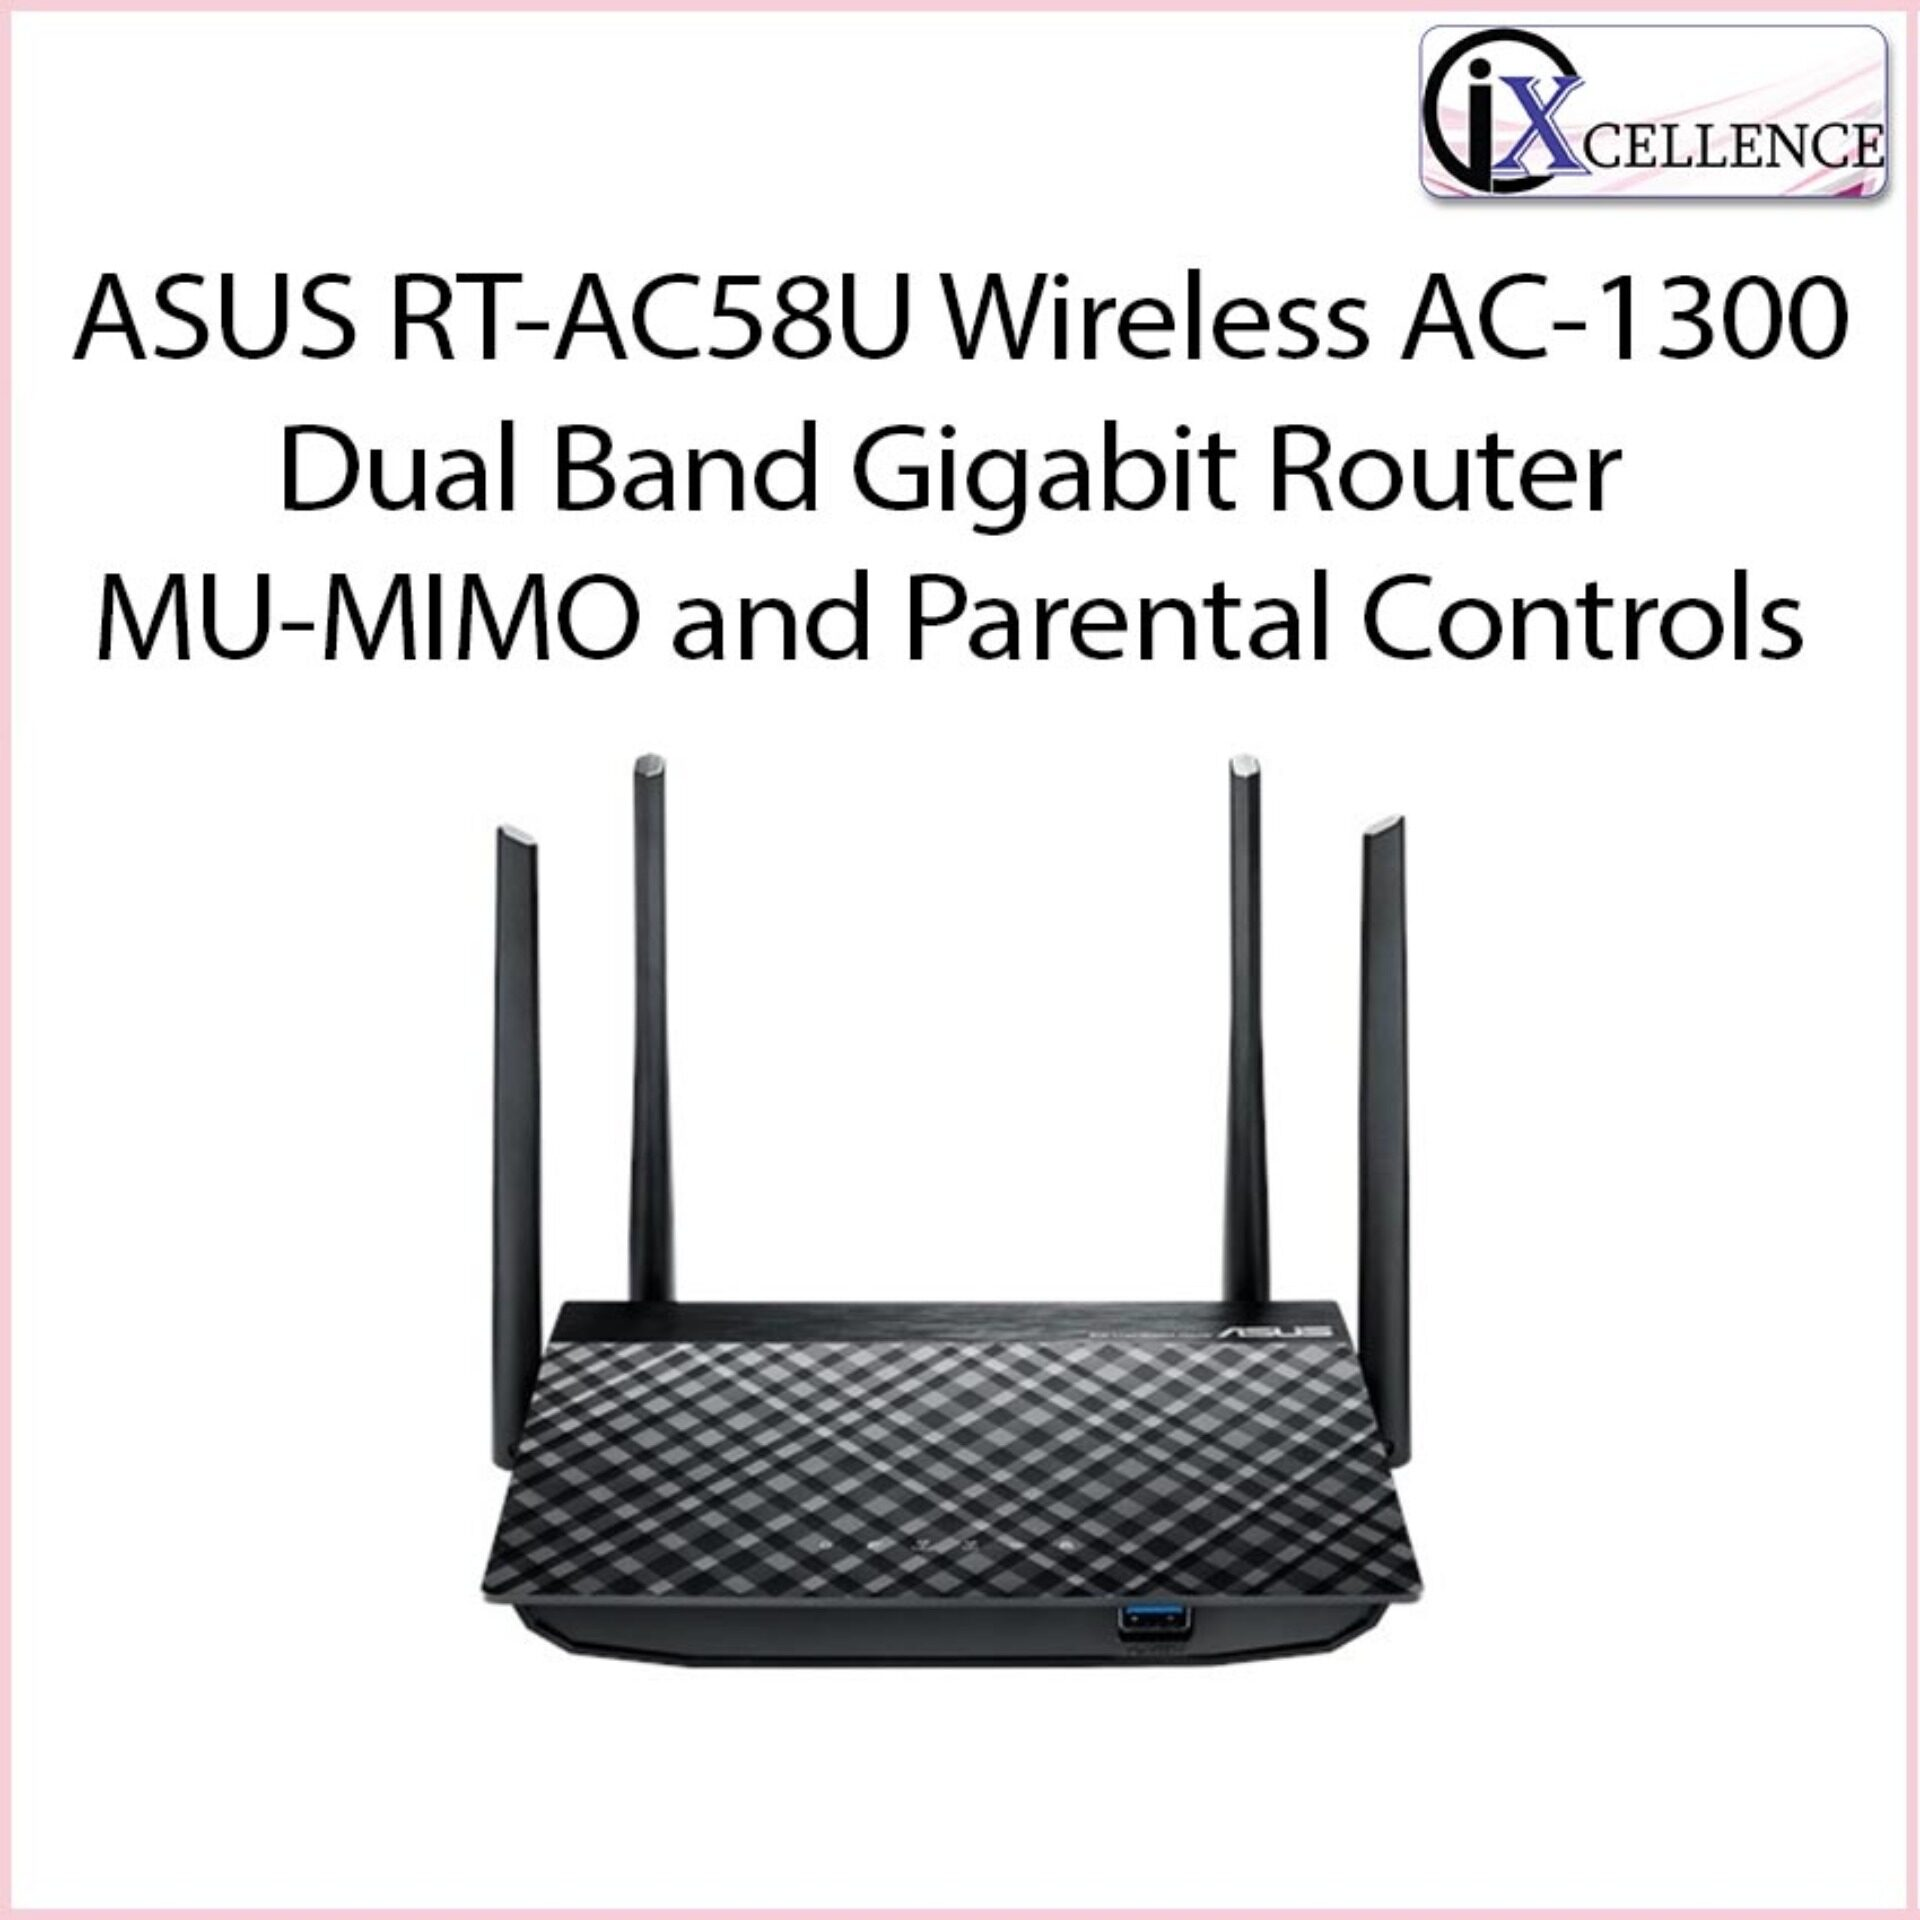 [IX] ASUS RT-AC58U Wireless AC-1300 Dual Band Gigabit Router MU-MIMO and Parental Controls